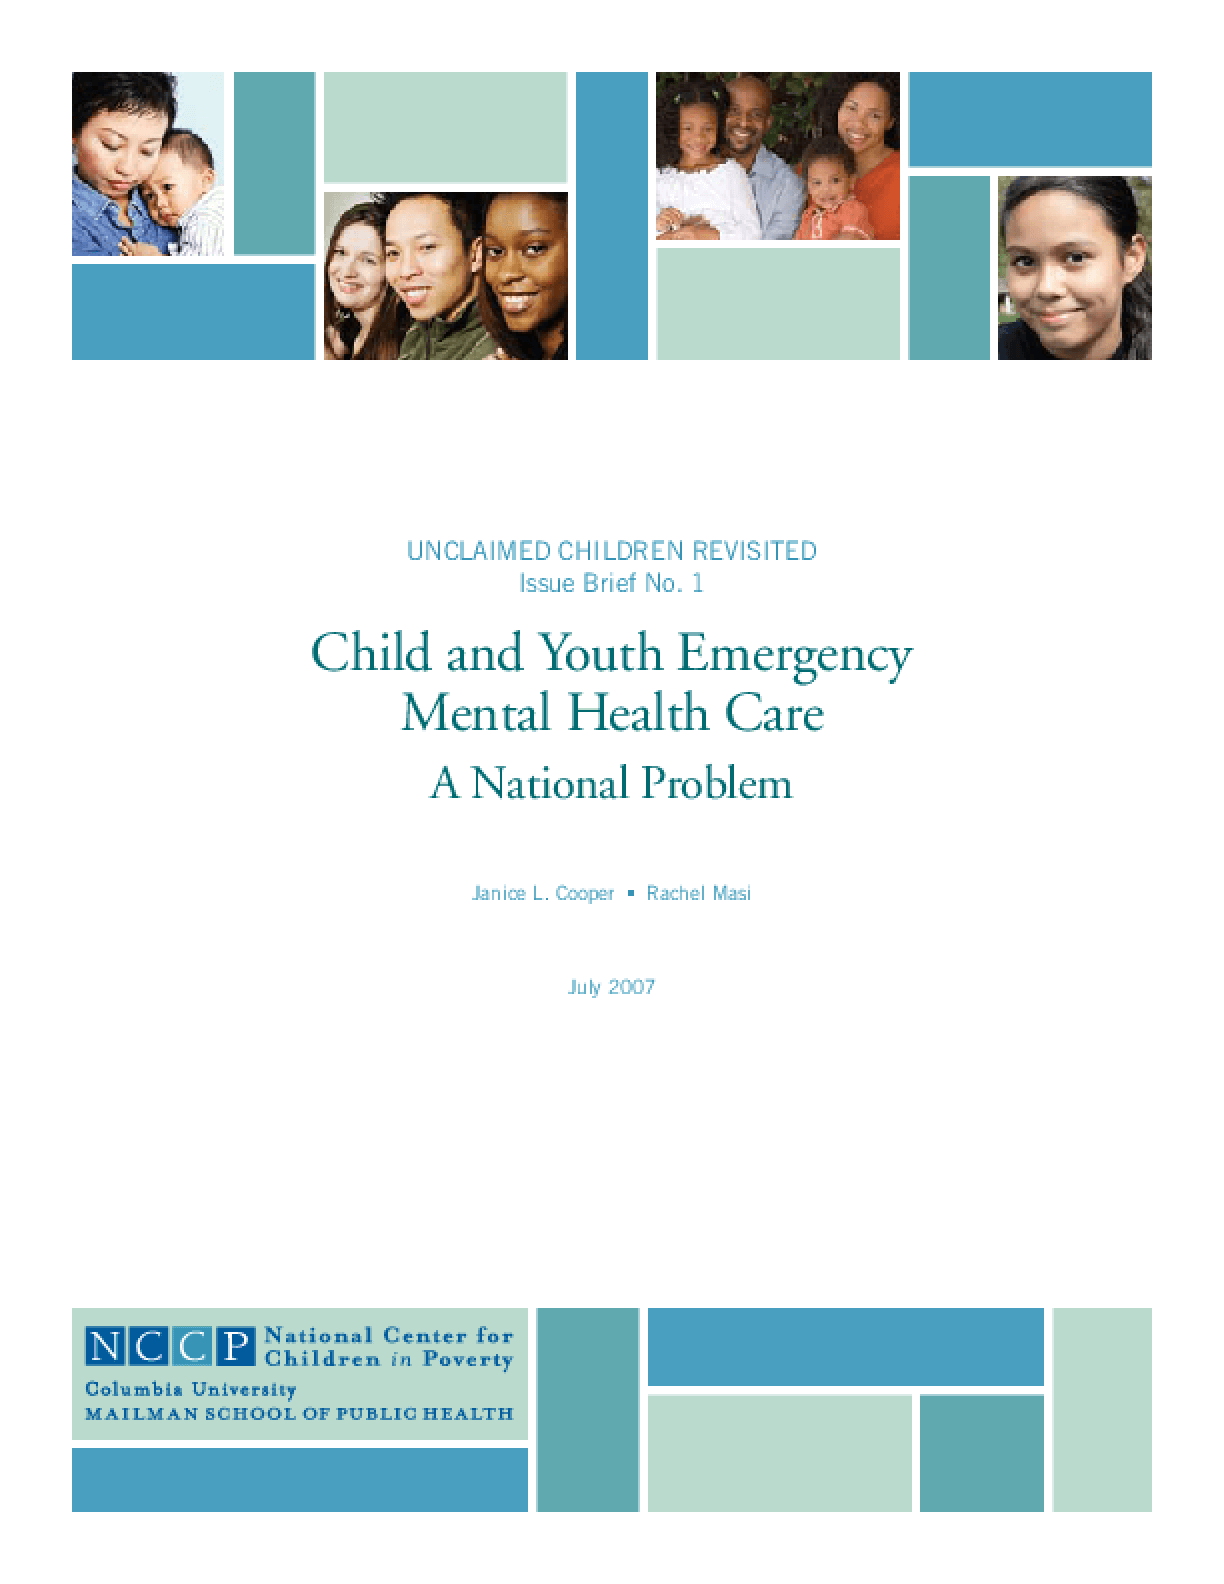 Child and Youth Emergency Mental Health Care: A National Problem